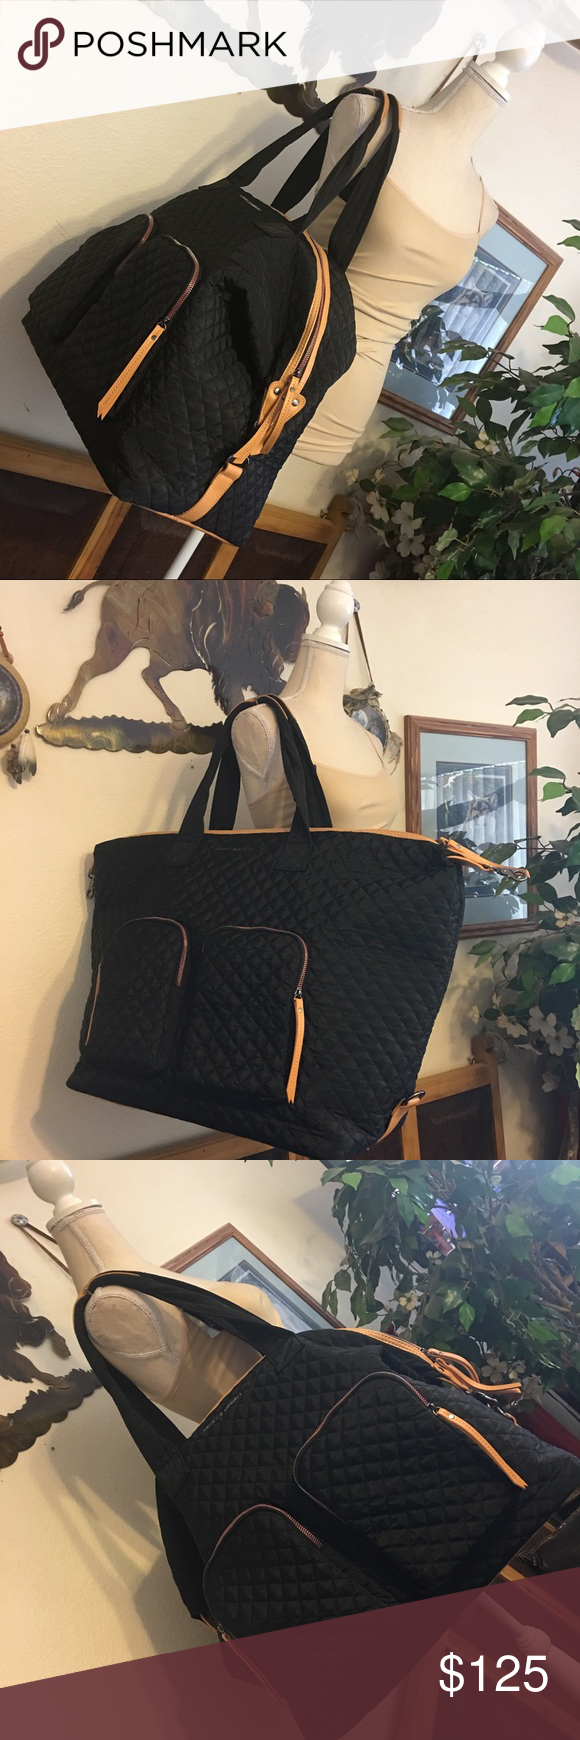 """Adrienne Vittadini large black quilted travel bag Large black quilted travel, gym or yoga bag, top corners clip down if desired, zipper top, zipper compartment inside, two zipper compartments outside front, soft and flexible bag, four metal feet on bottom, excellent condition looks brand new, no flaws and clean. 27""""Wx18""""H 10"""" handle drop Tomato red soft fabric interior, black quilted fabric exterior with golden tan leather trim Adrienne Vittadini Bags Totes"""